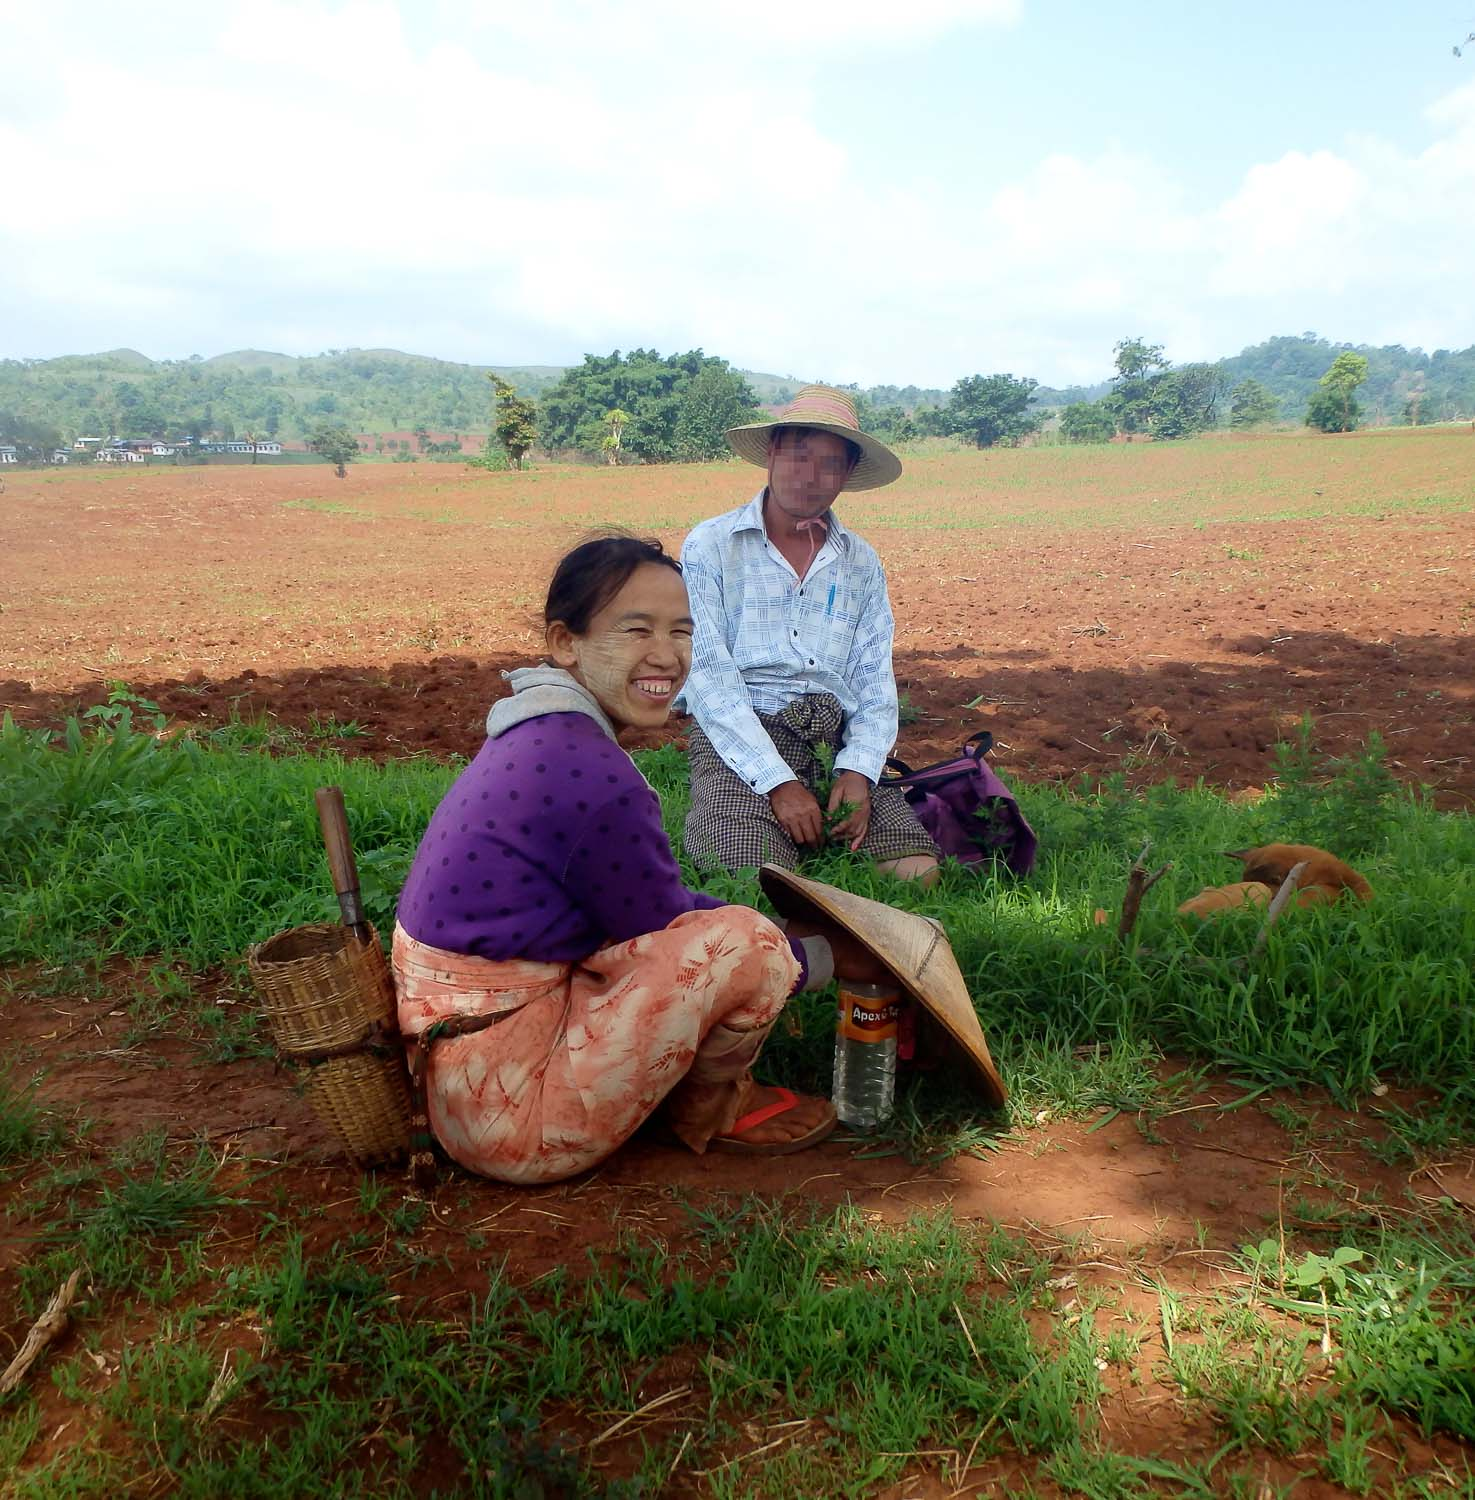 William stops to talk with a woman working in a field.